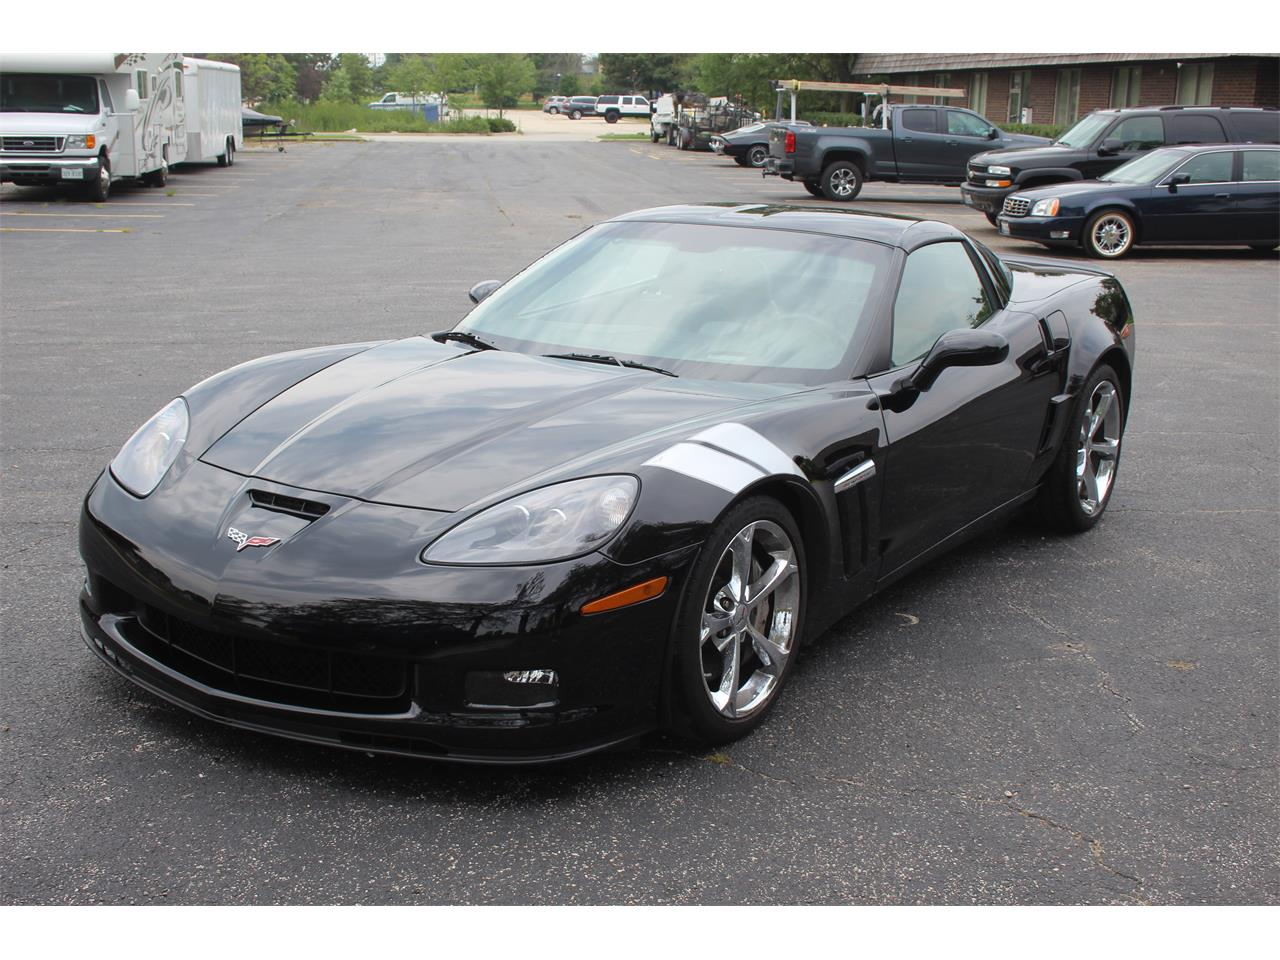 Large Picture of '10 Chevrolet Corvette located in Illinois - $39,900.00 Offered by Midwest Muscle Cars - LIN4